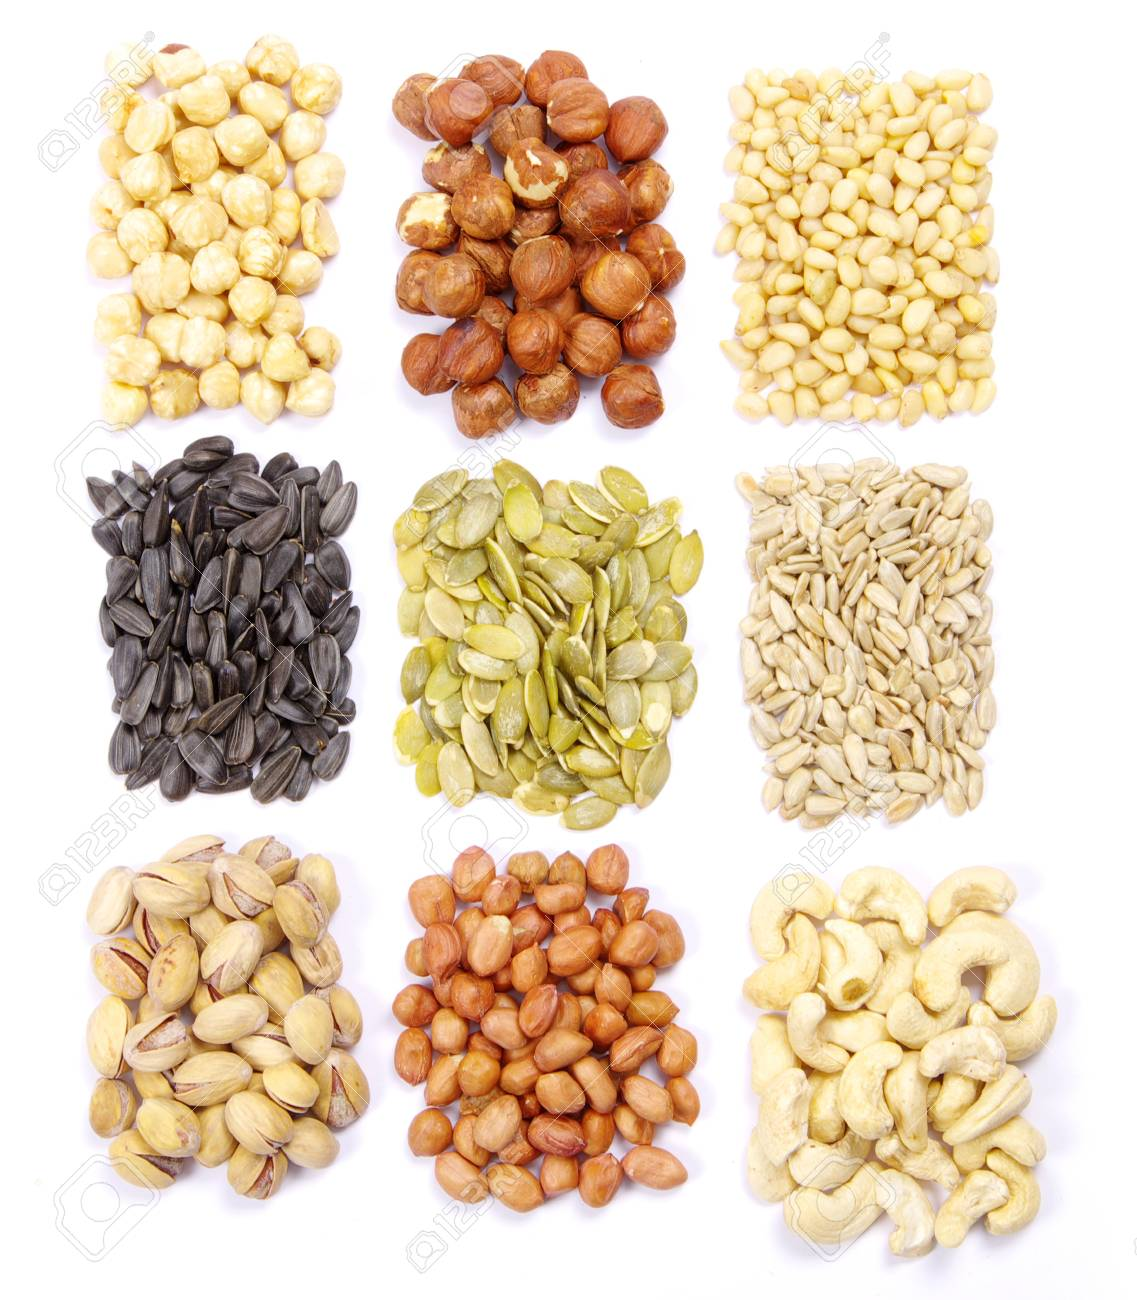 seeds and nuts with collection Stock Photo - 9215452